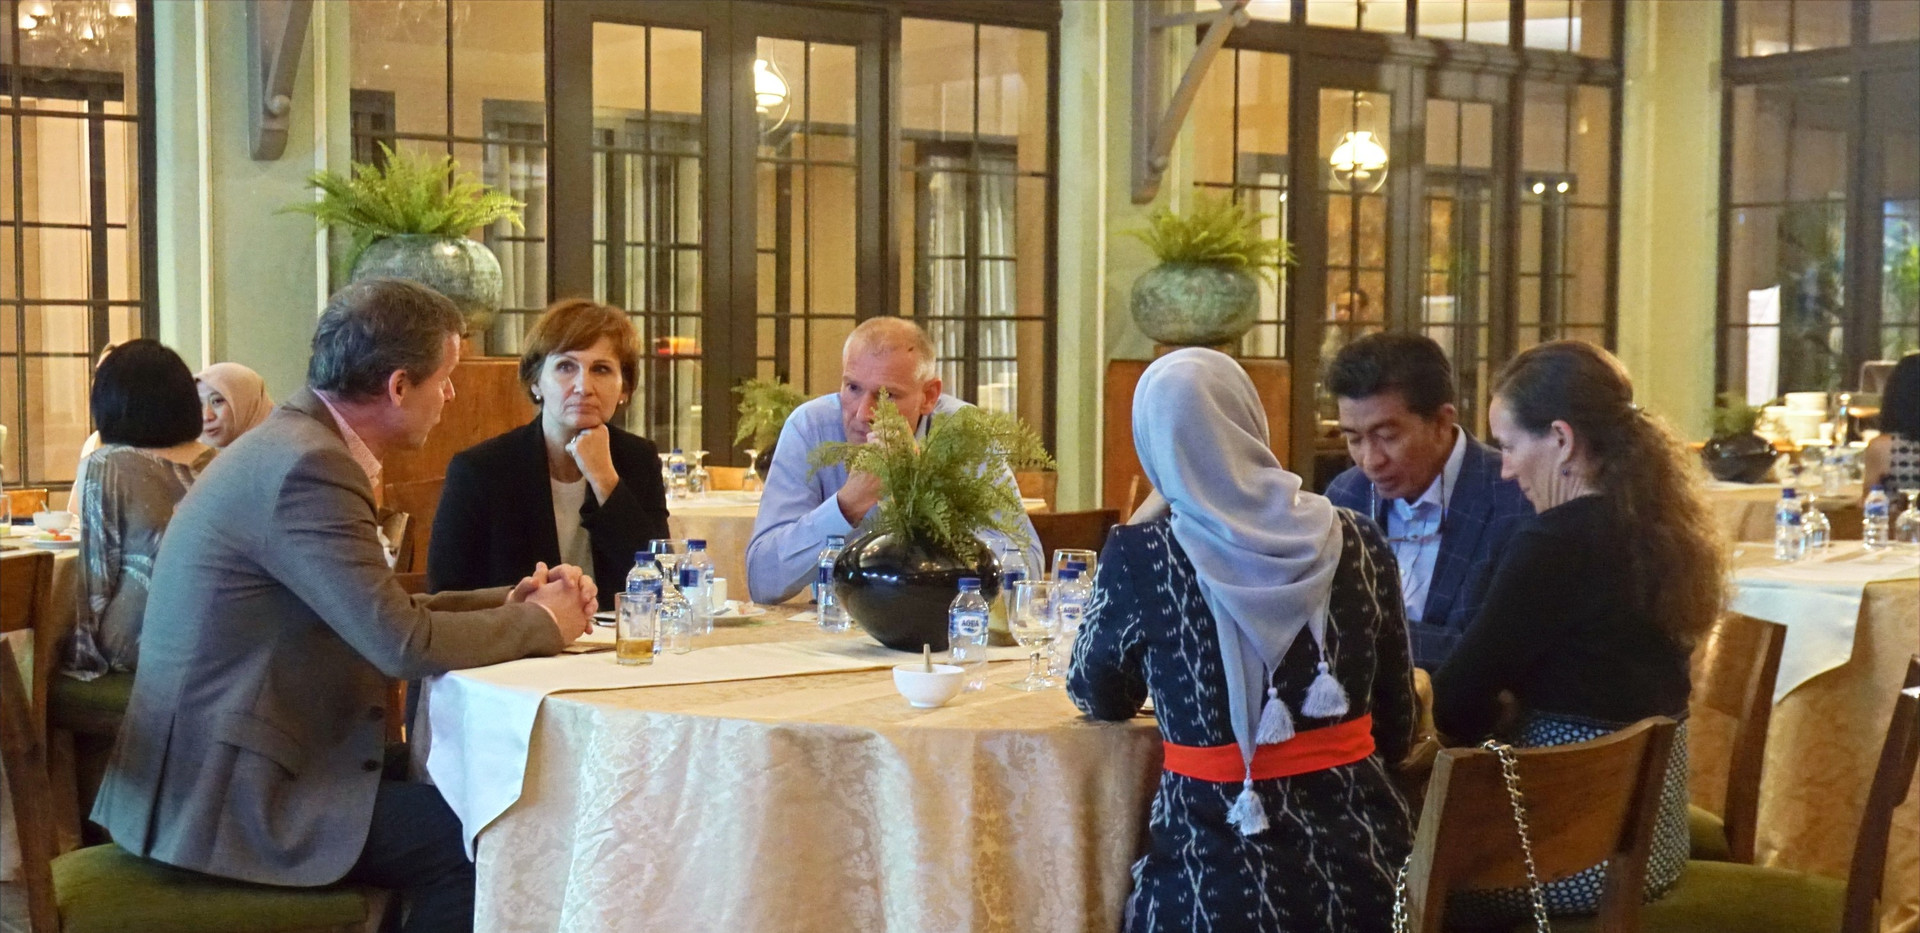 Mr. Rainer Huefers (Left), Ms. Bettina Stark-Watzinger (Center), and Mr. Moritz Kleine-Brockhoff (Right) were engaged in a discussion during CIPS Gala Dinner 2019.